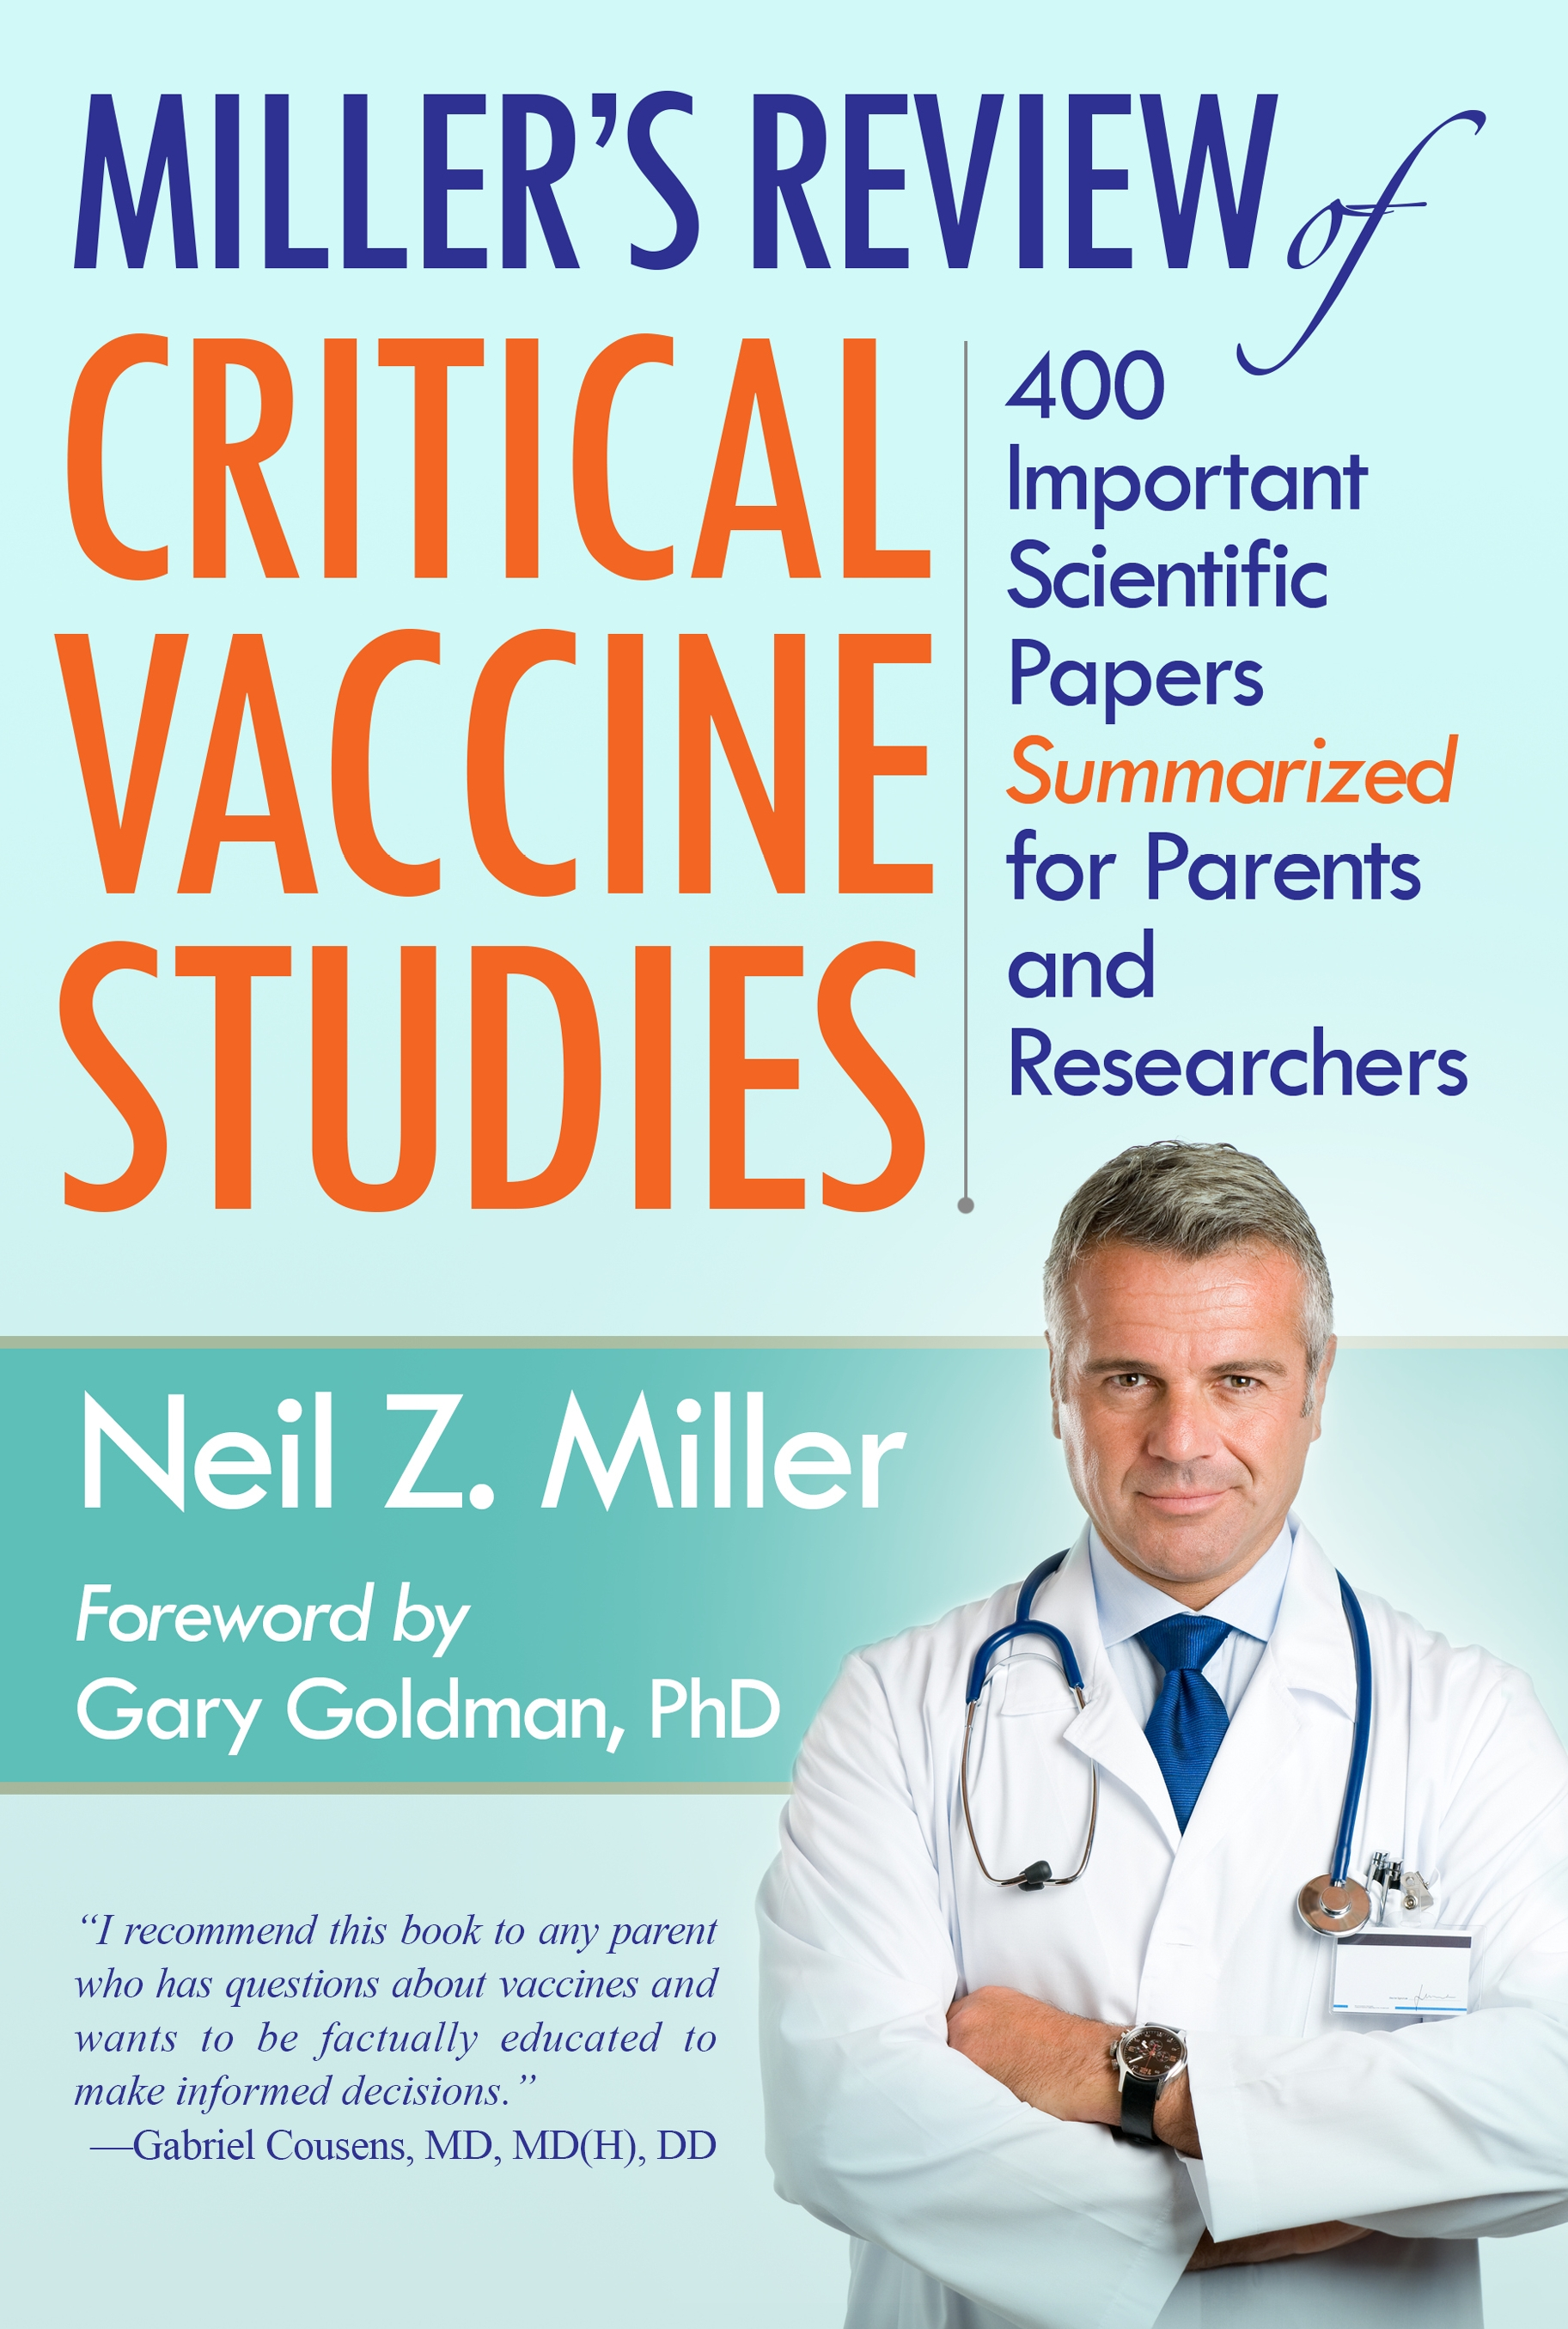 Miller's Review of Critical Vaccine Studies